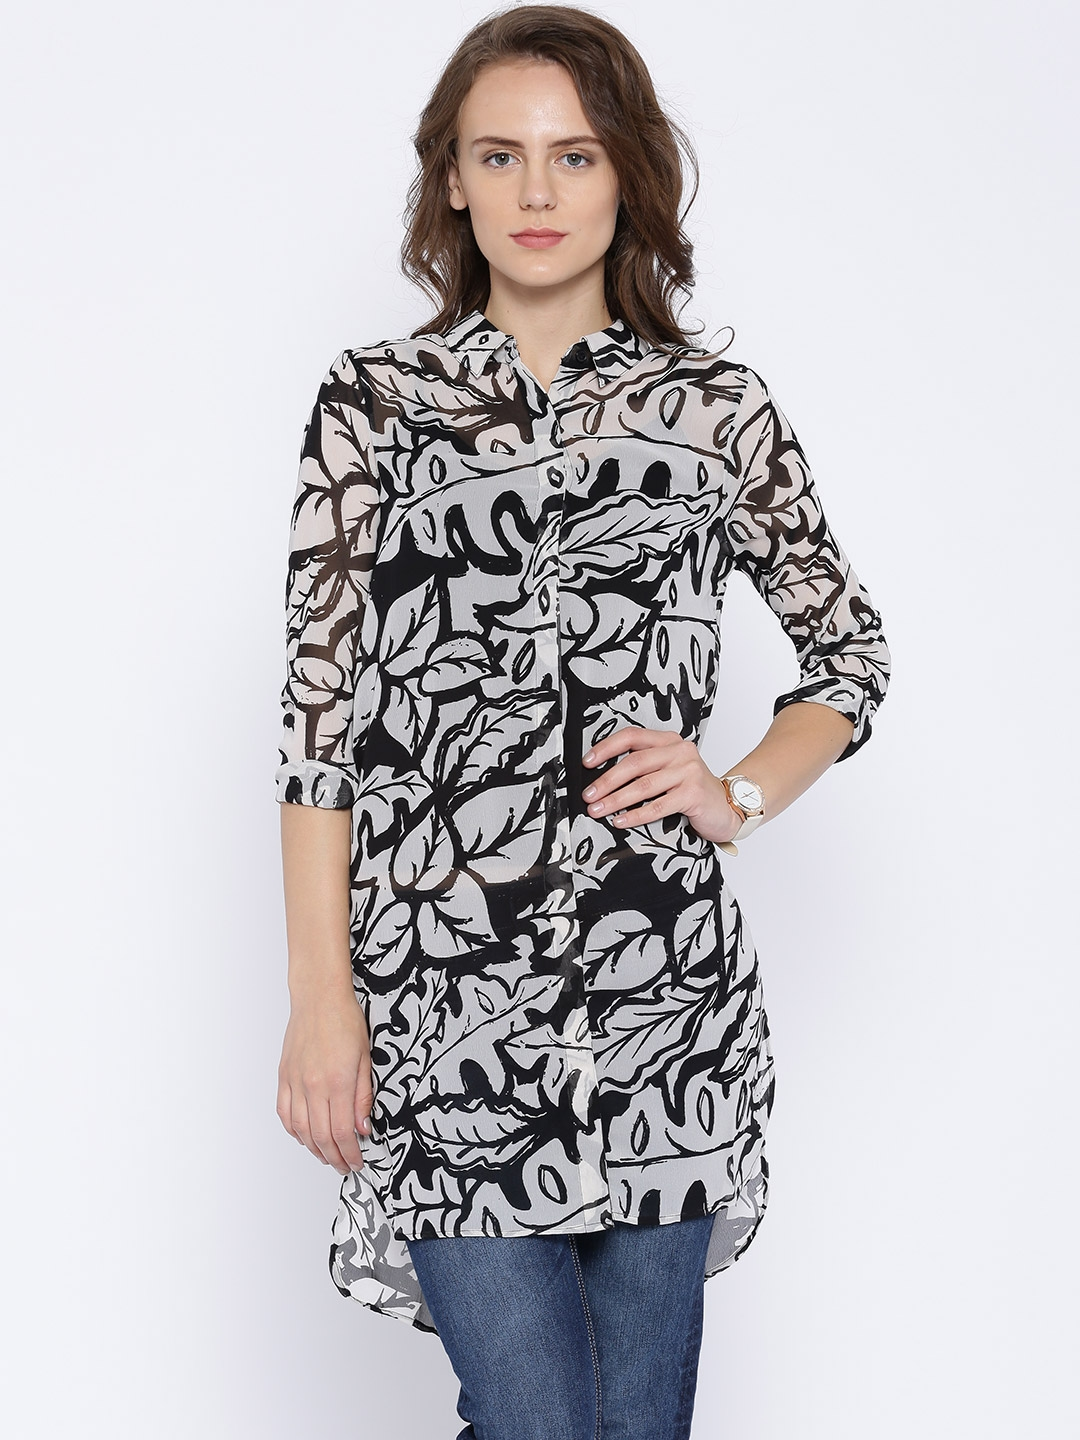 c40a47c48 Buy ONLY Black & White Printed Georgette Sheer Longline Shirt ...